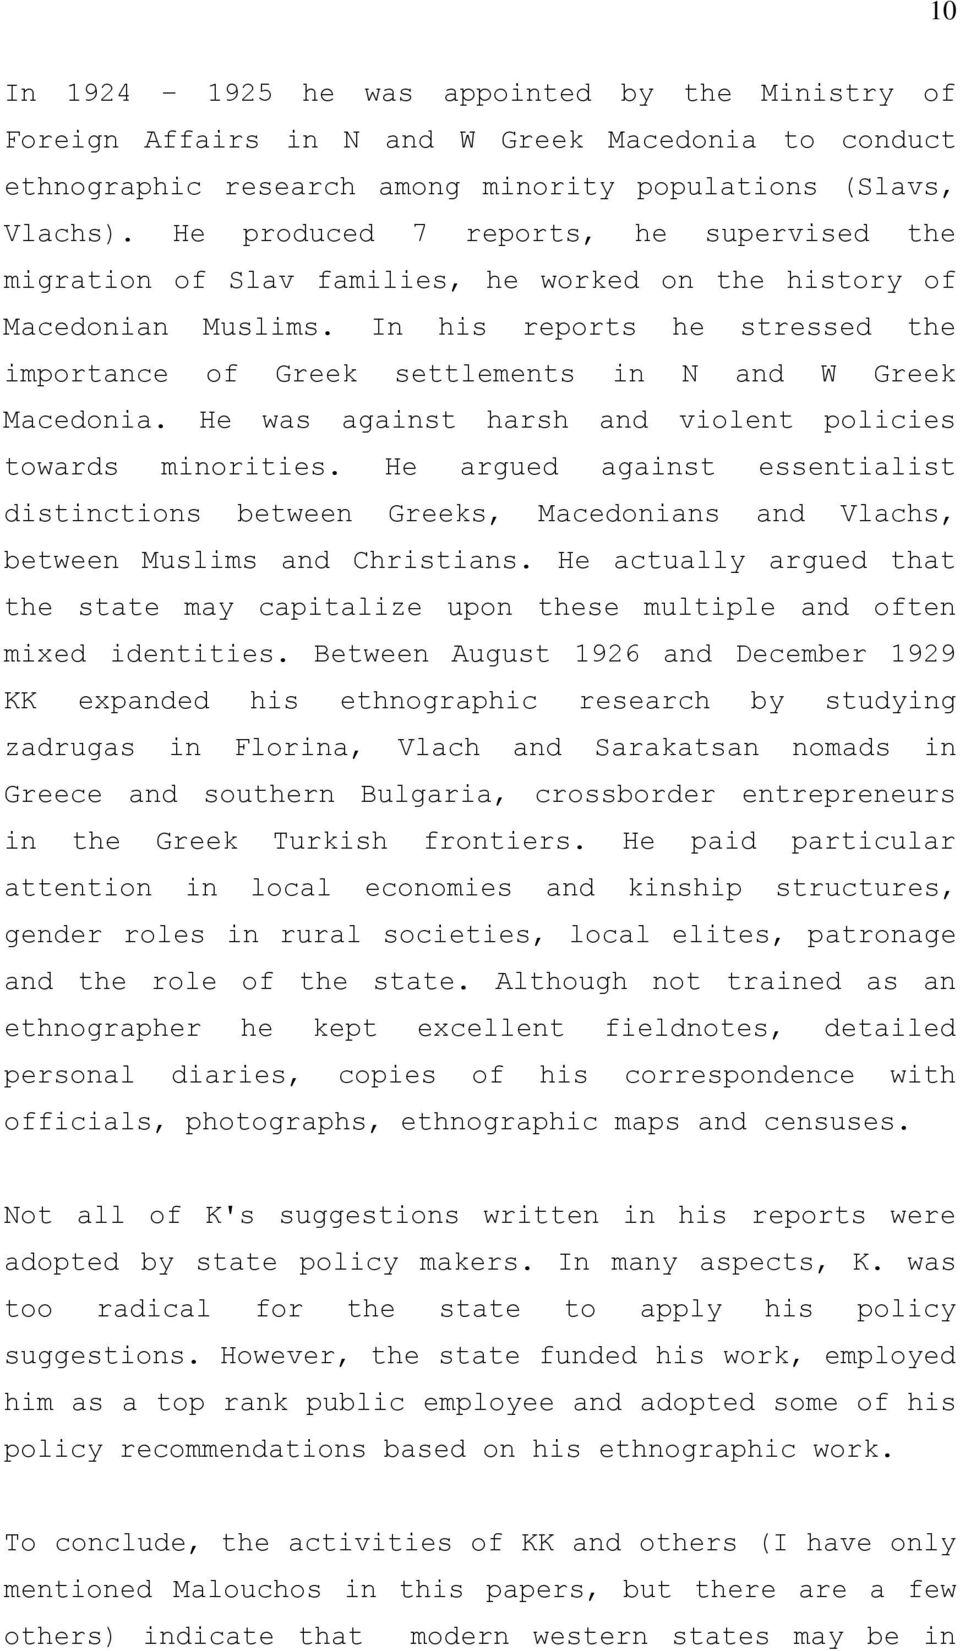 In his reports he stressed the importance of Greek settlements in N and W Greek Macedonia. He was against harsh and violent policies towards minorities.